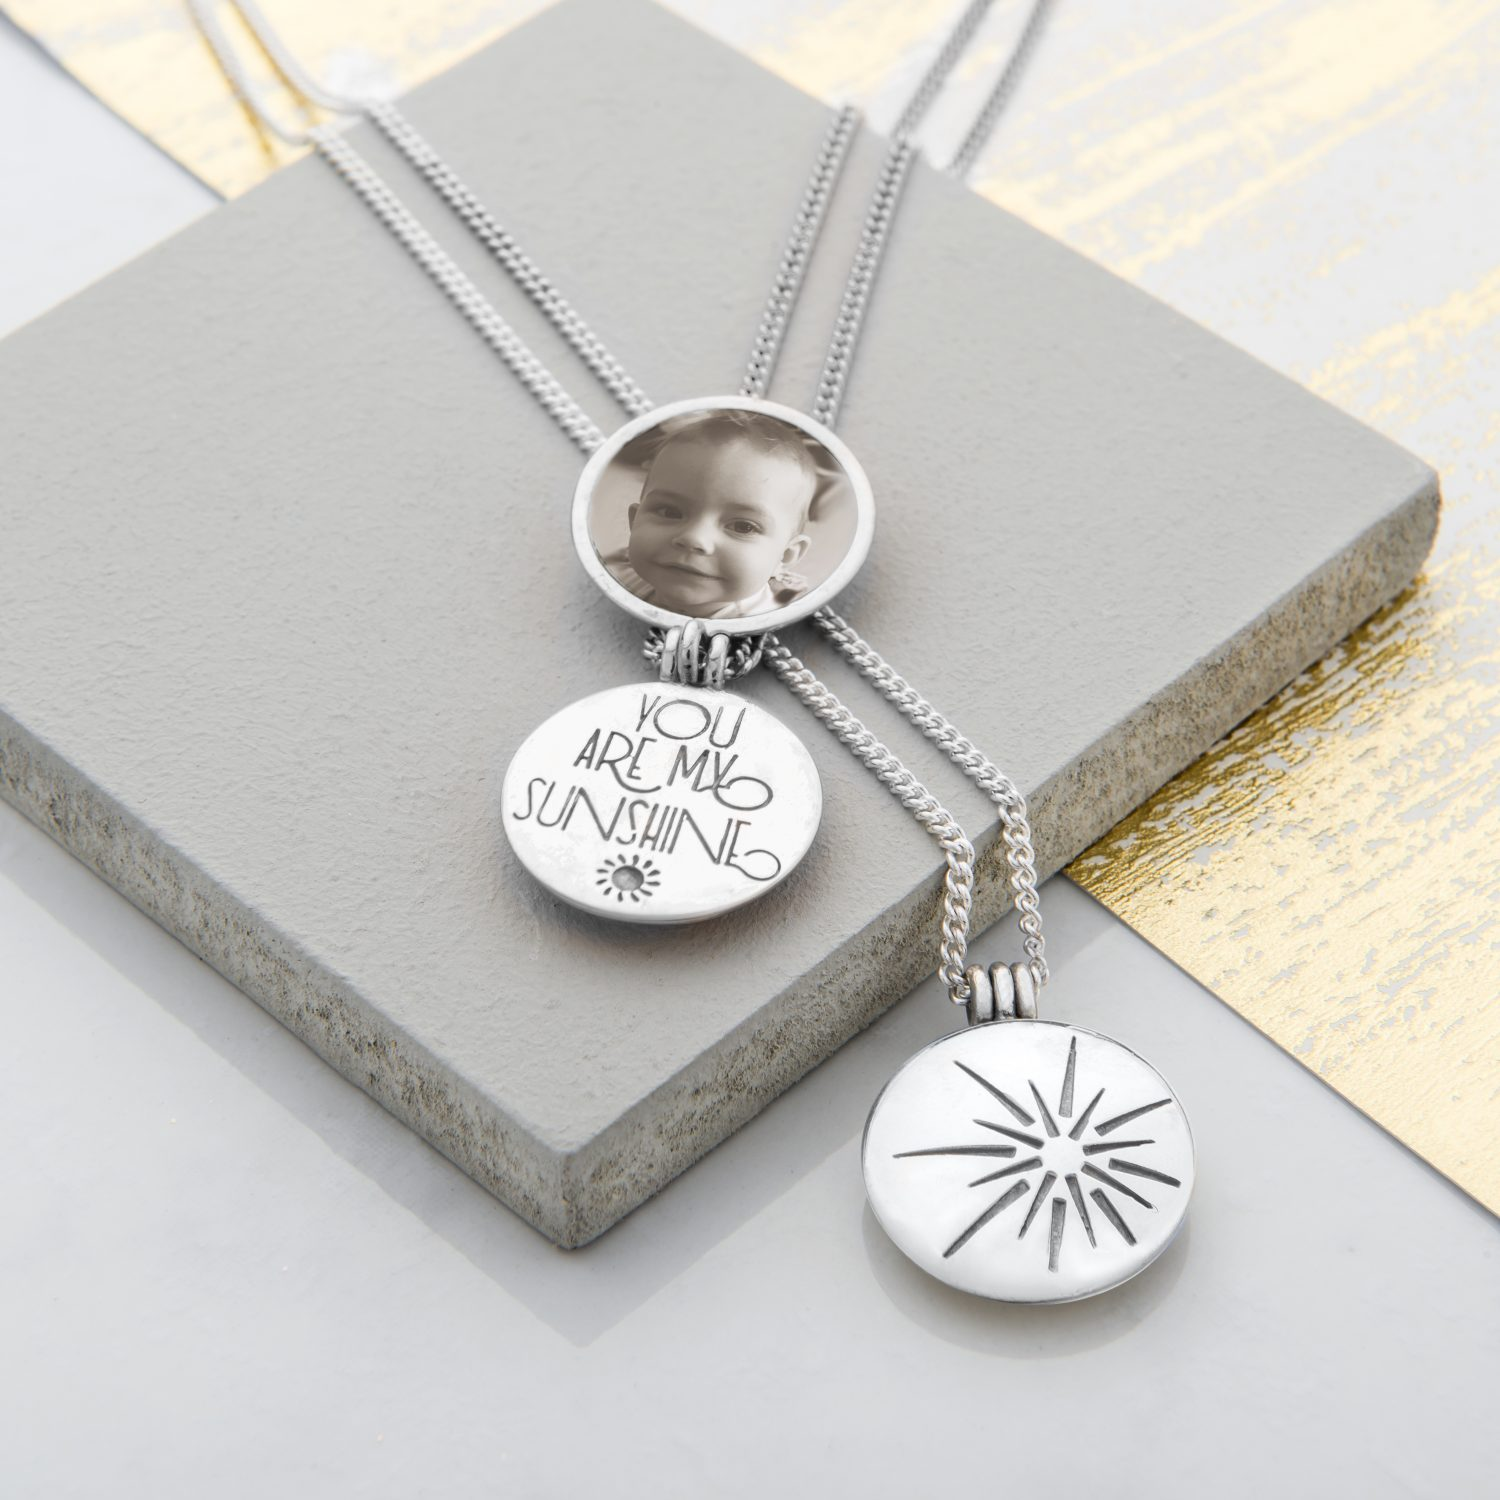 You are my sunshine handmade silver locket necklace